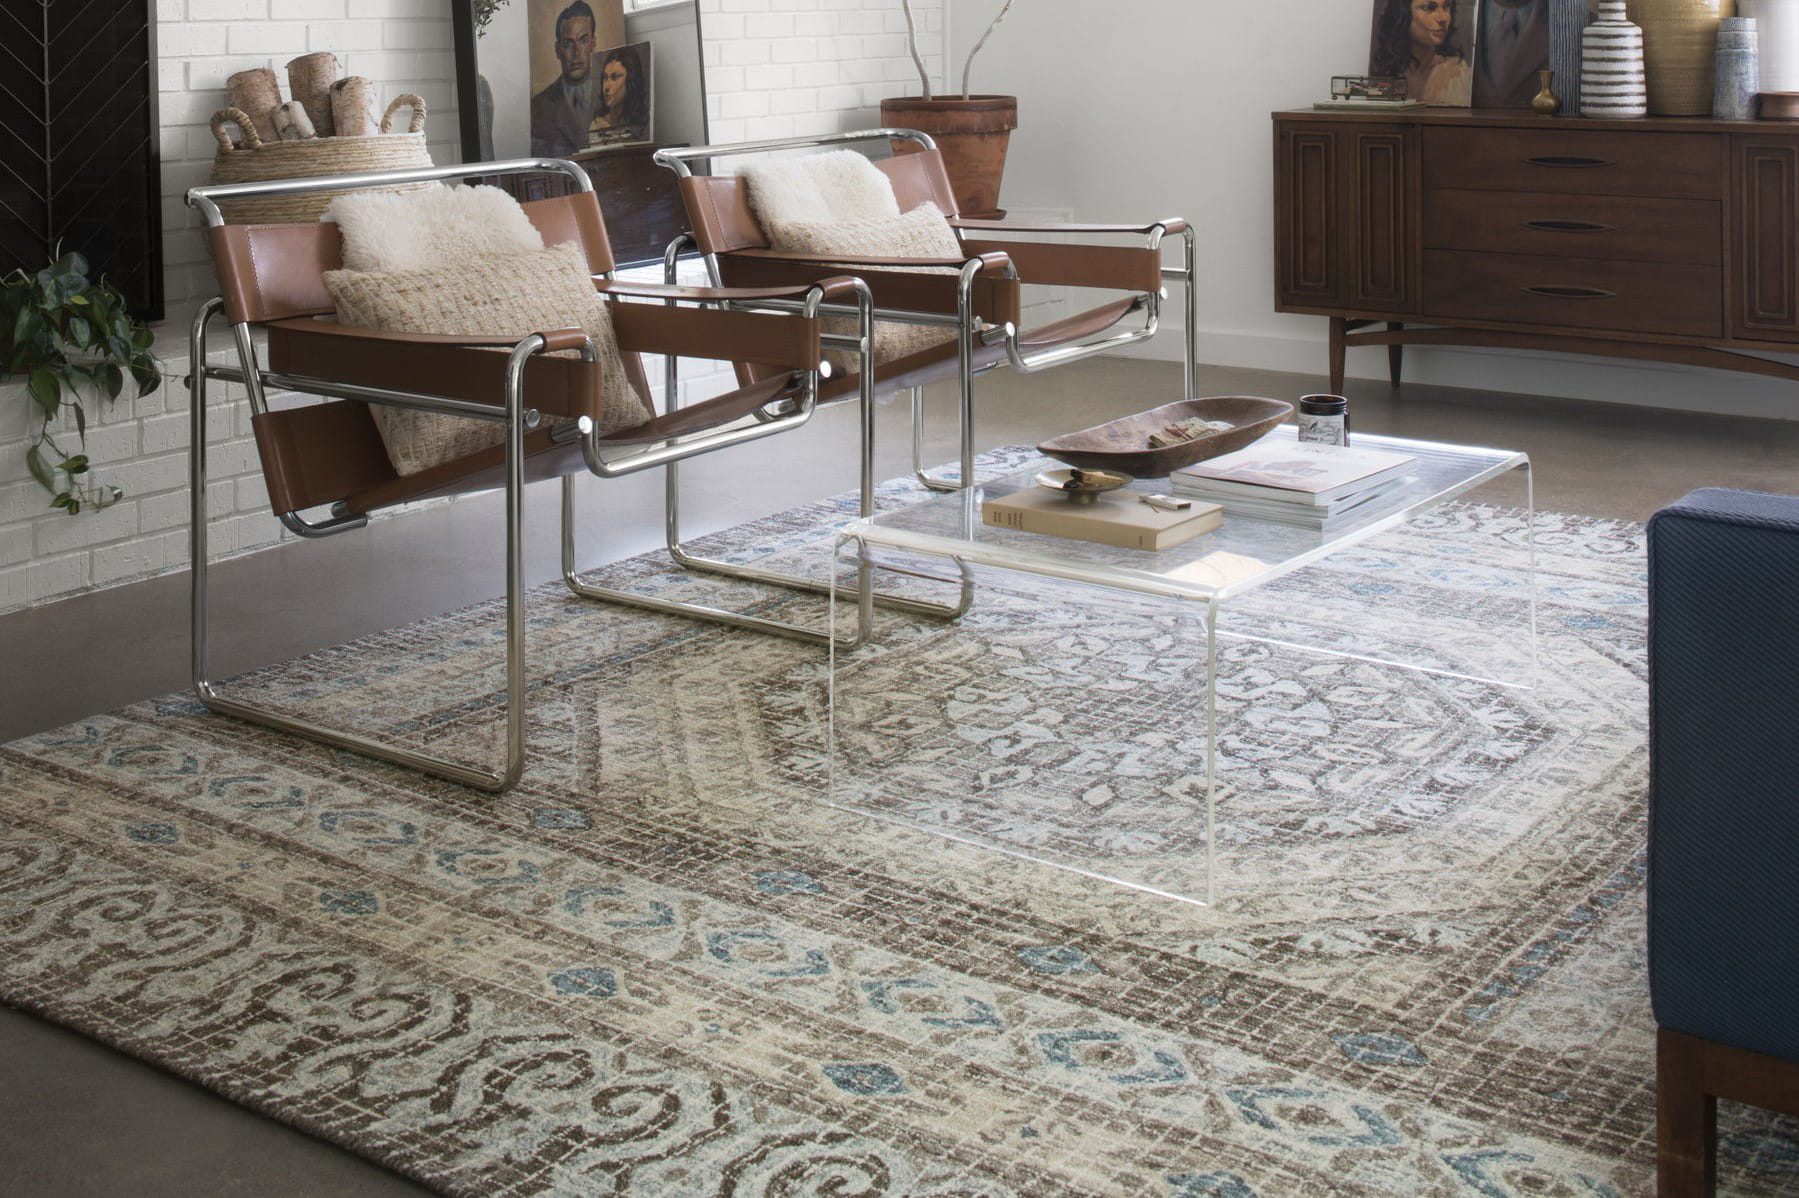 What Is The Largest Area Rug Size